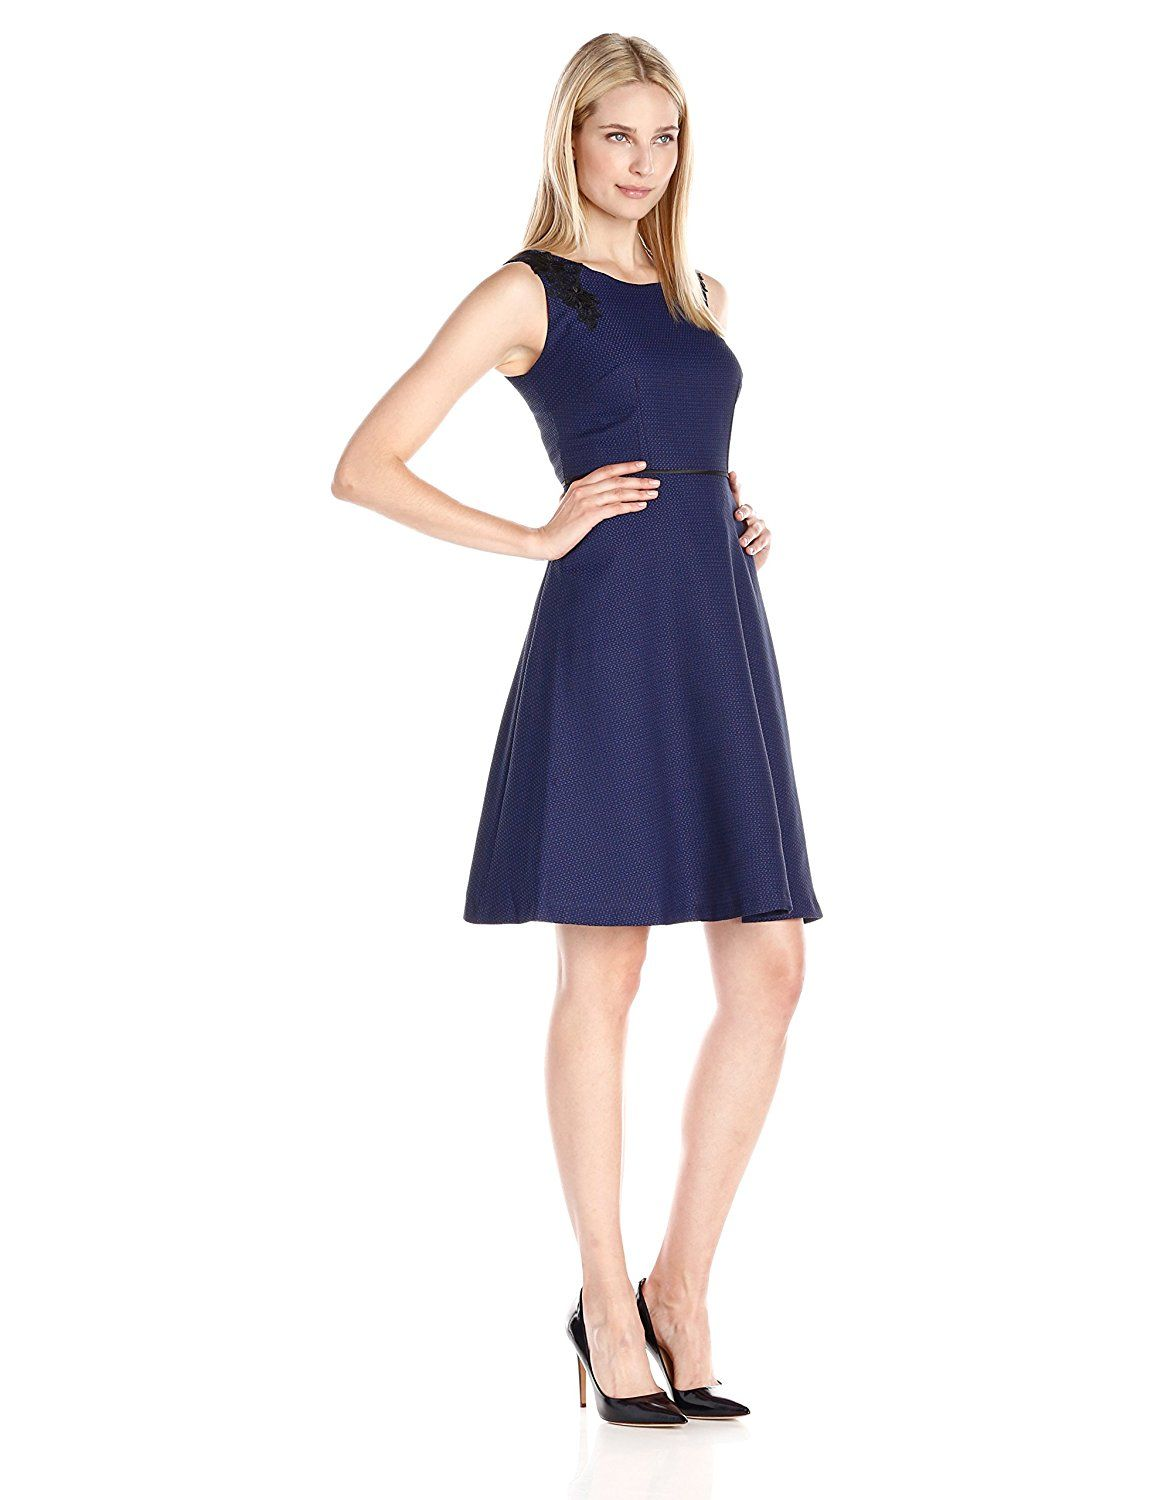 Kasper Women's Fit-and-Flare Shoulder-Detail Dress -- Unbelievable  item right here! : Women's dresses